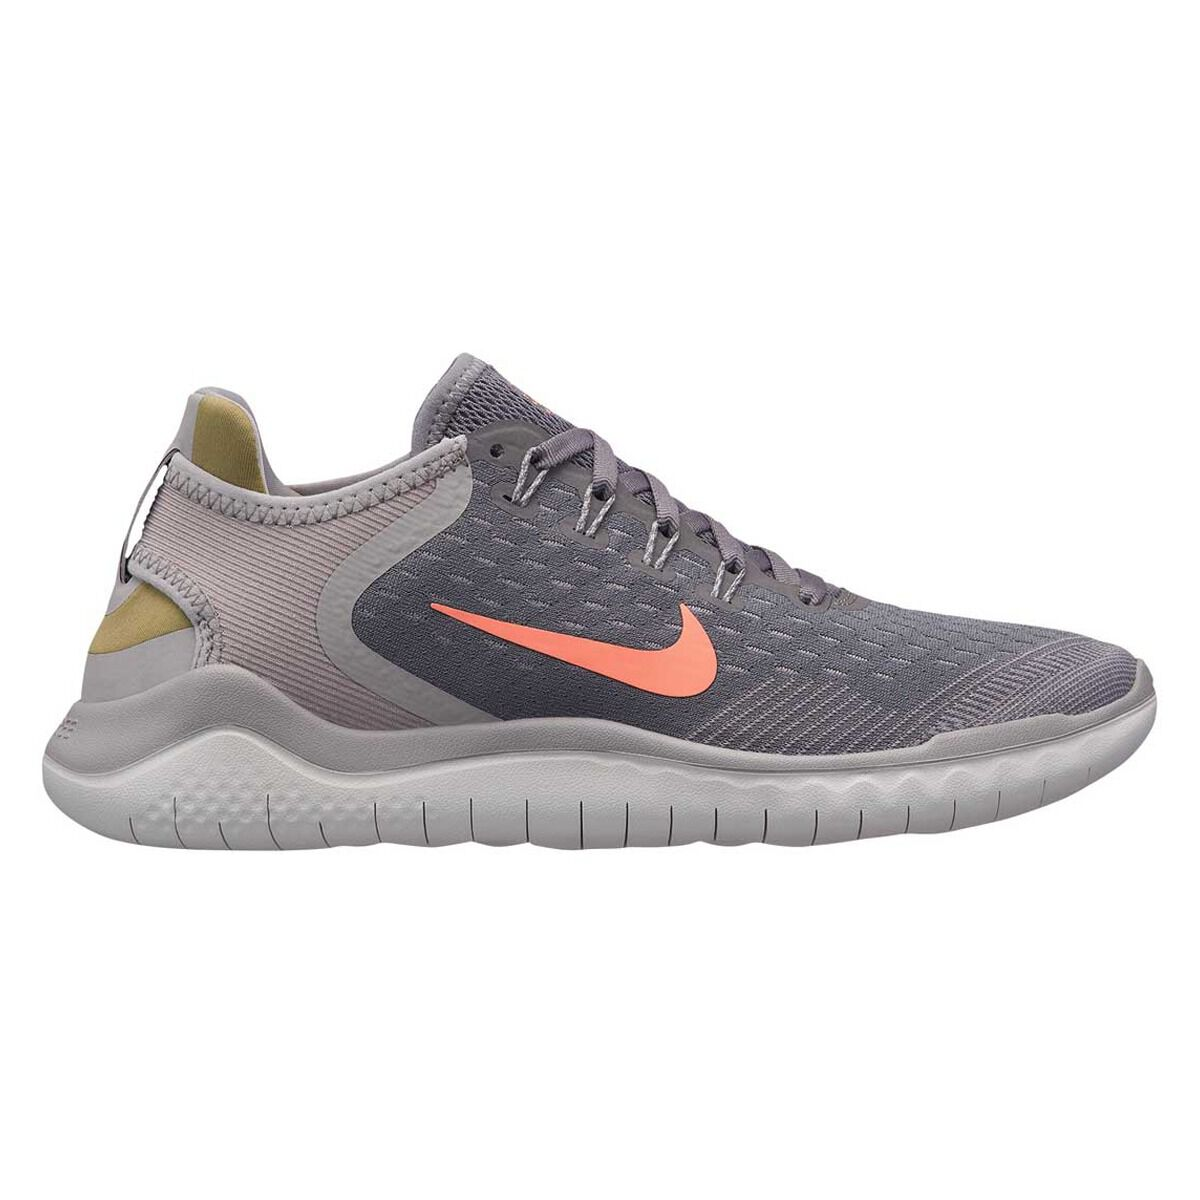 cheap for discount 39783 0ecda ... get nike free rn 2018 womens running shoes grey orange us 9 grey orange  da52d 400df